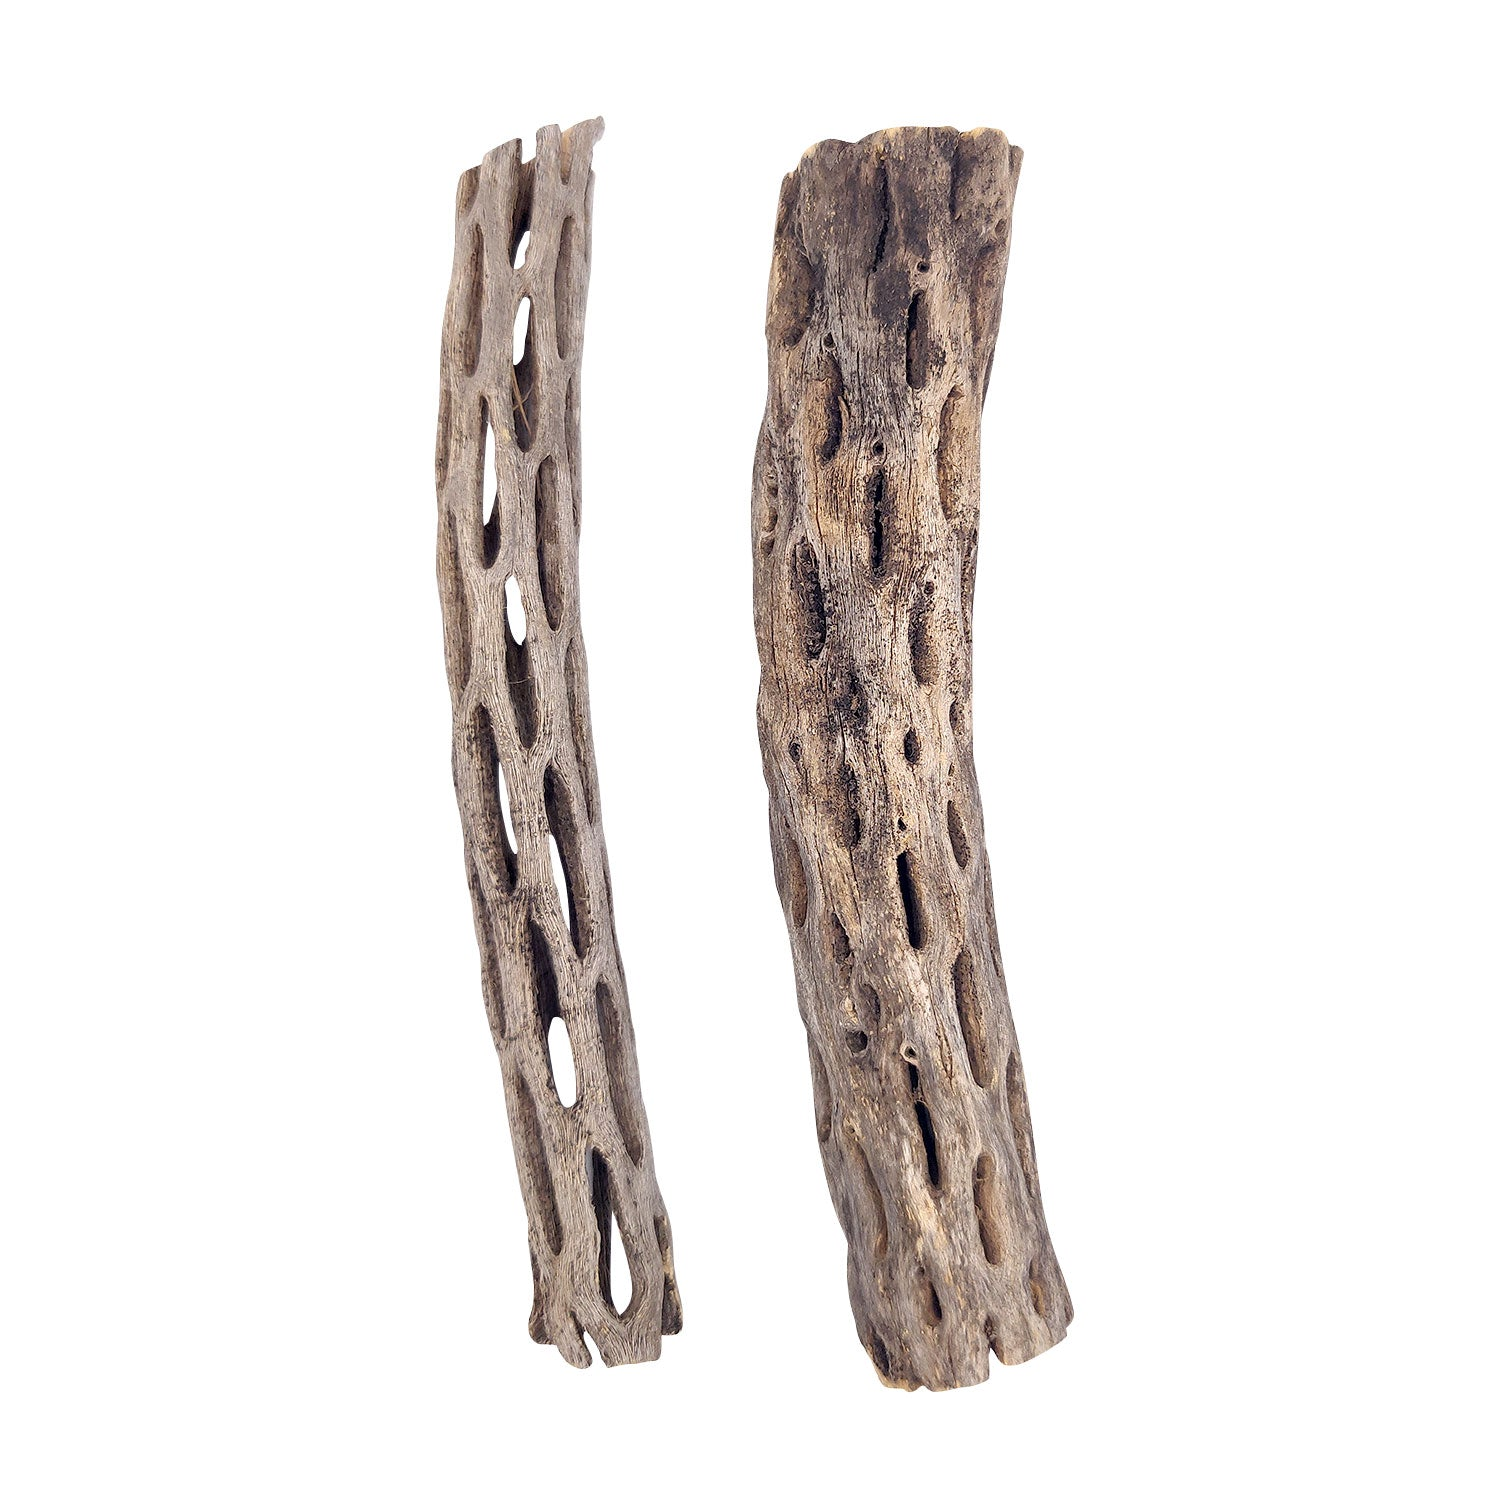 6 inch Staghorn Cholla Wood Pot for sale, Cholla for Aquariums, Crafting, Air Plants, and more, Natural Cholla Cactus Wood for sale, Air Plant display